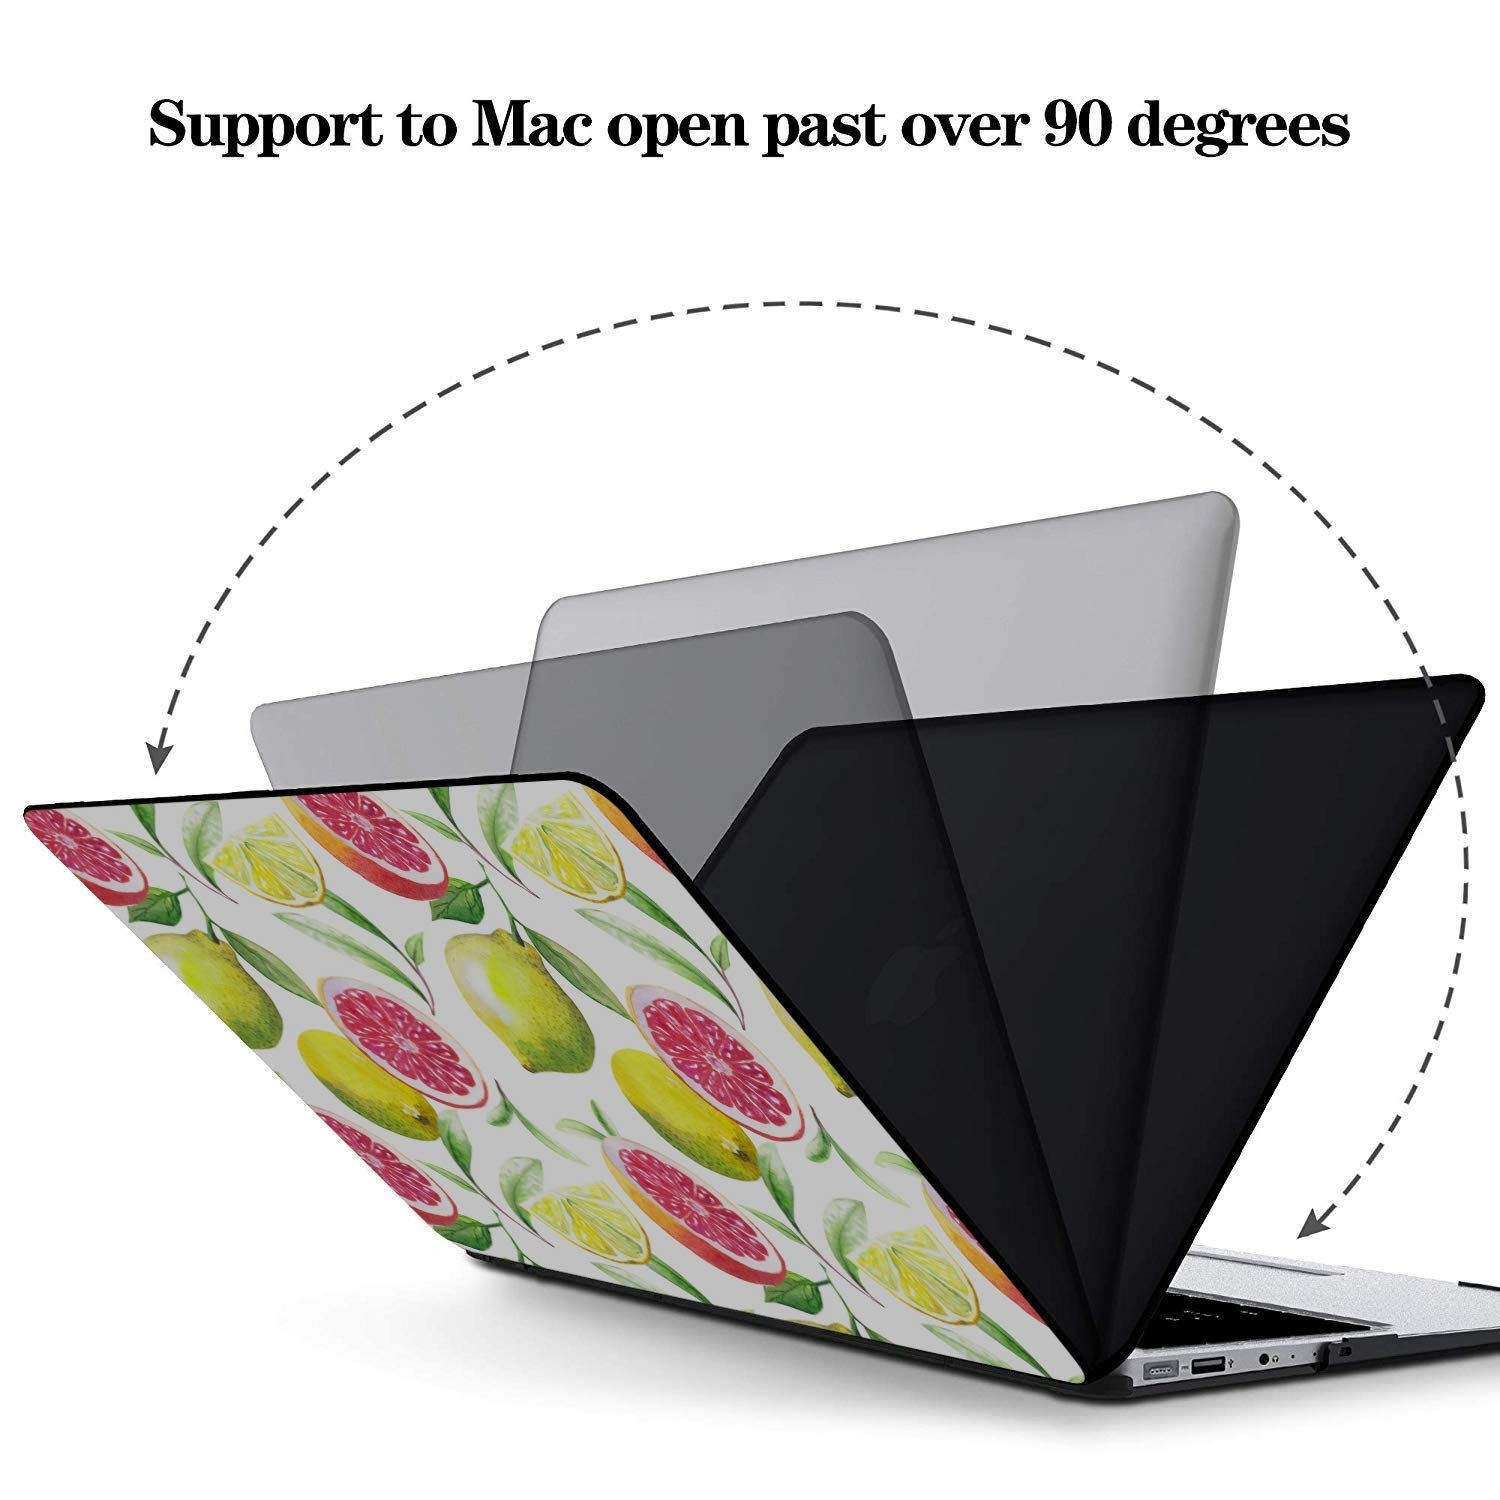 MacBook Air Laptop Case Summer Fruit Grapefruit Green Leaf Plastic Hard Shell Compatible Mac Air 11 Pro 13 15 MacBook 2018 Case Protection for MacBook 2016-2019 Version